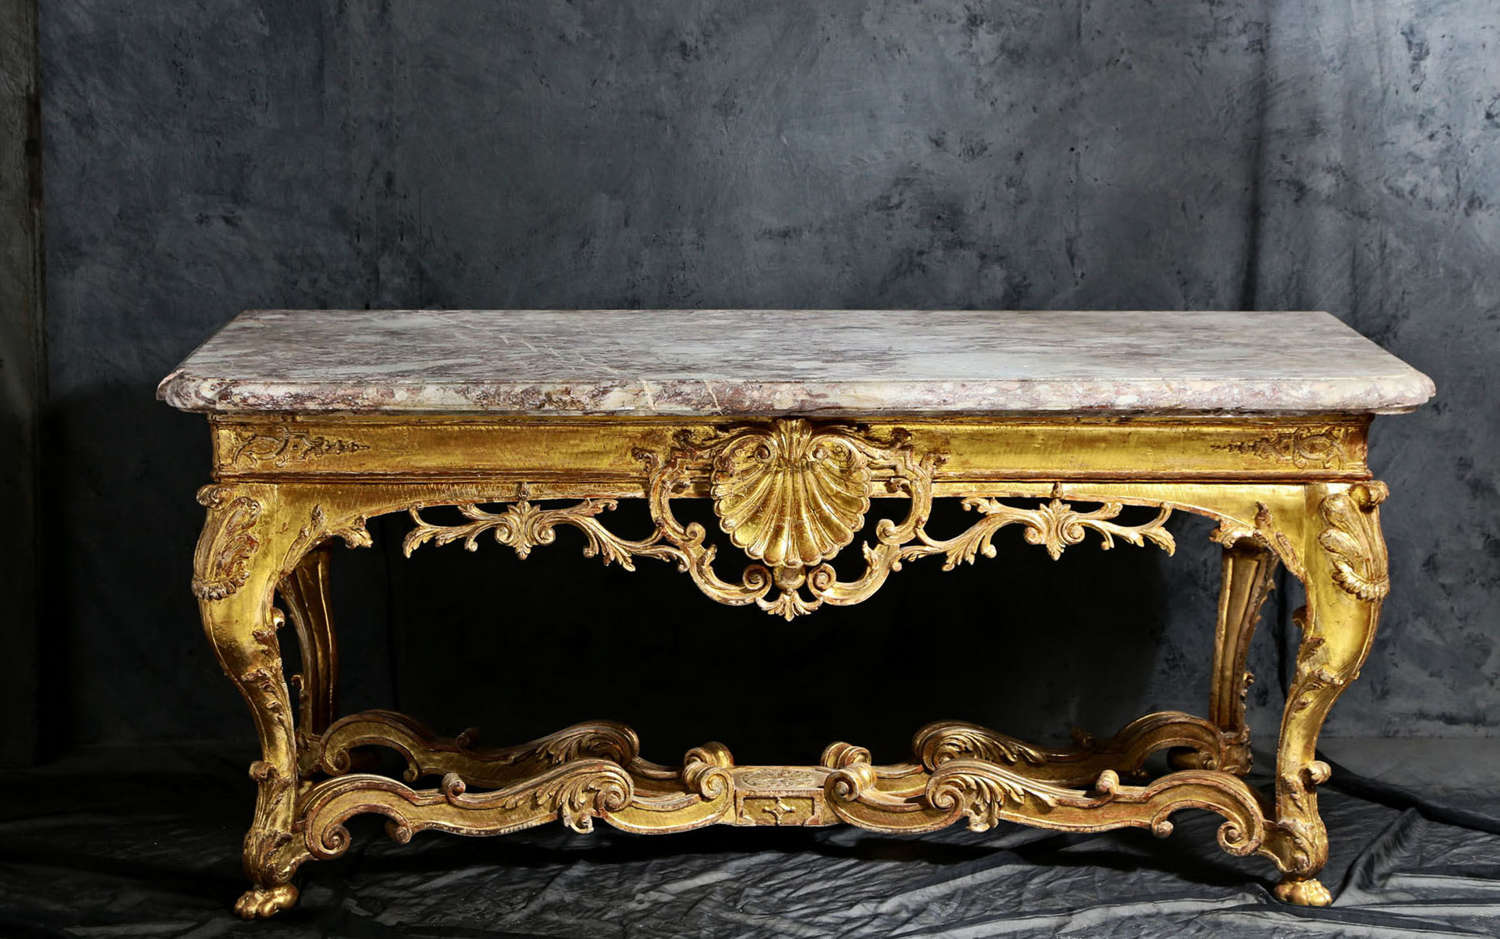 18th century French Regence Giltwood Console Table